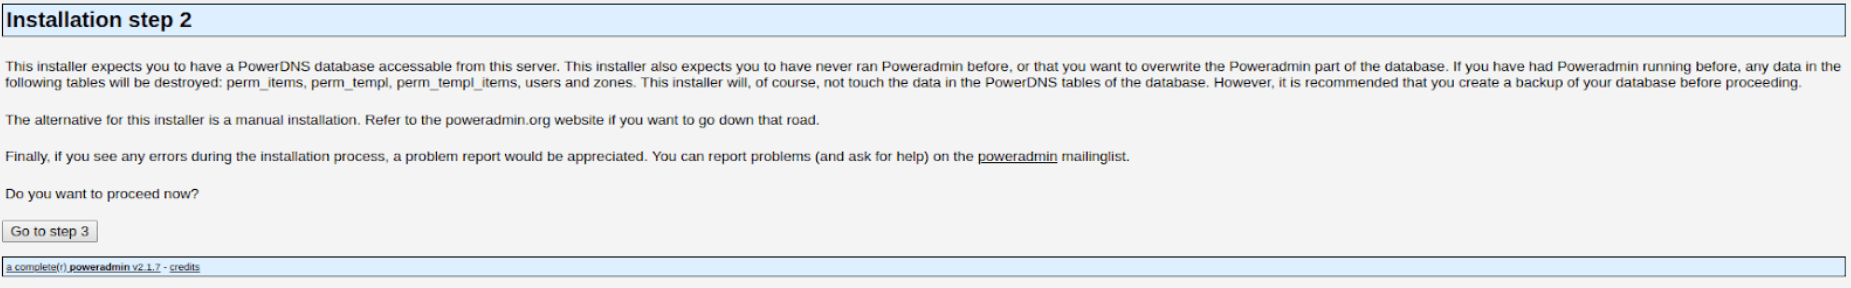 To install Poweradmin you must first acknowledge its warning.